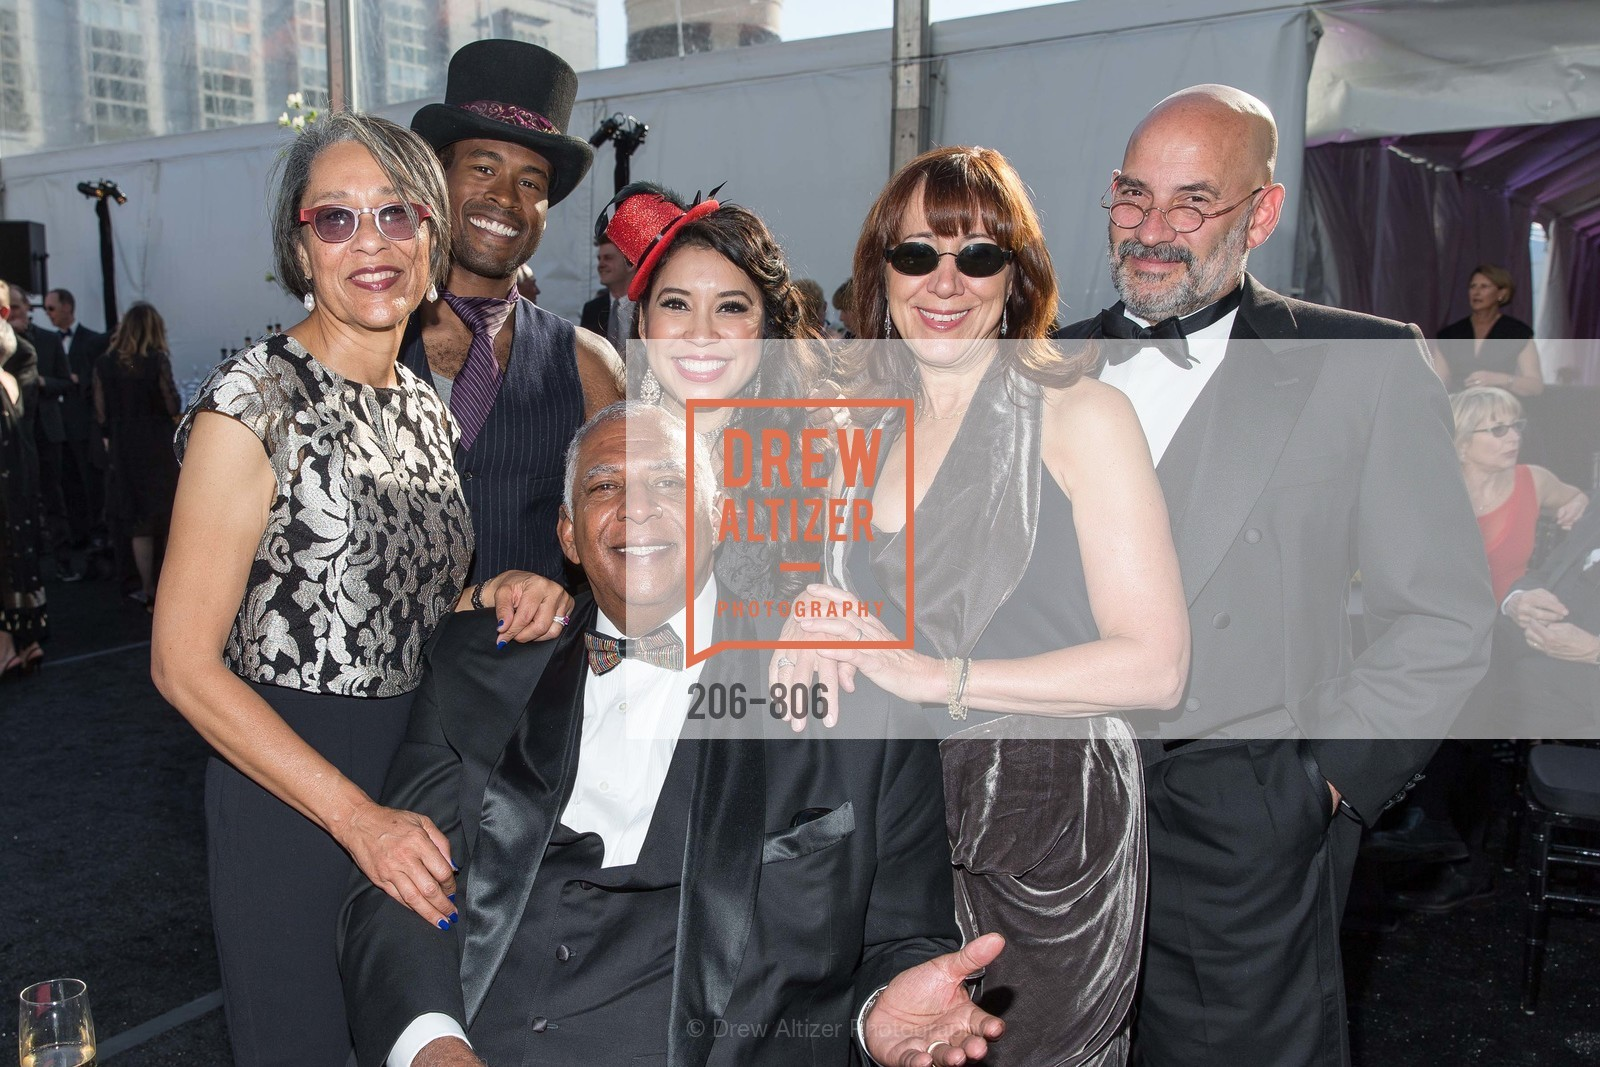 Lalita Tademy, Rafael Jordan, Josie Alvarez, Perry Williams, Ellen Sussman, Neil Rothman, A.C.T. Gala Come Get Stranded, US, April 26th, 2015,Drew Altizer, Drew Altizer Photography, full-service agency, private events, San Francisco photographer, photographer california